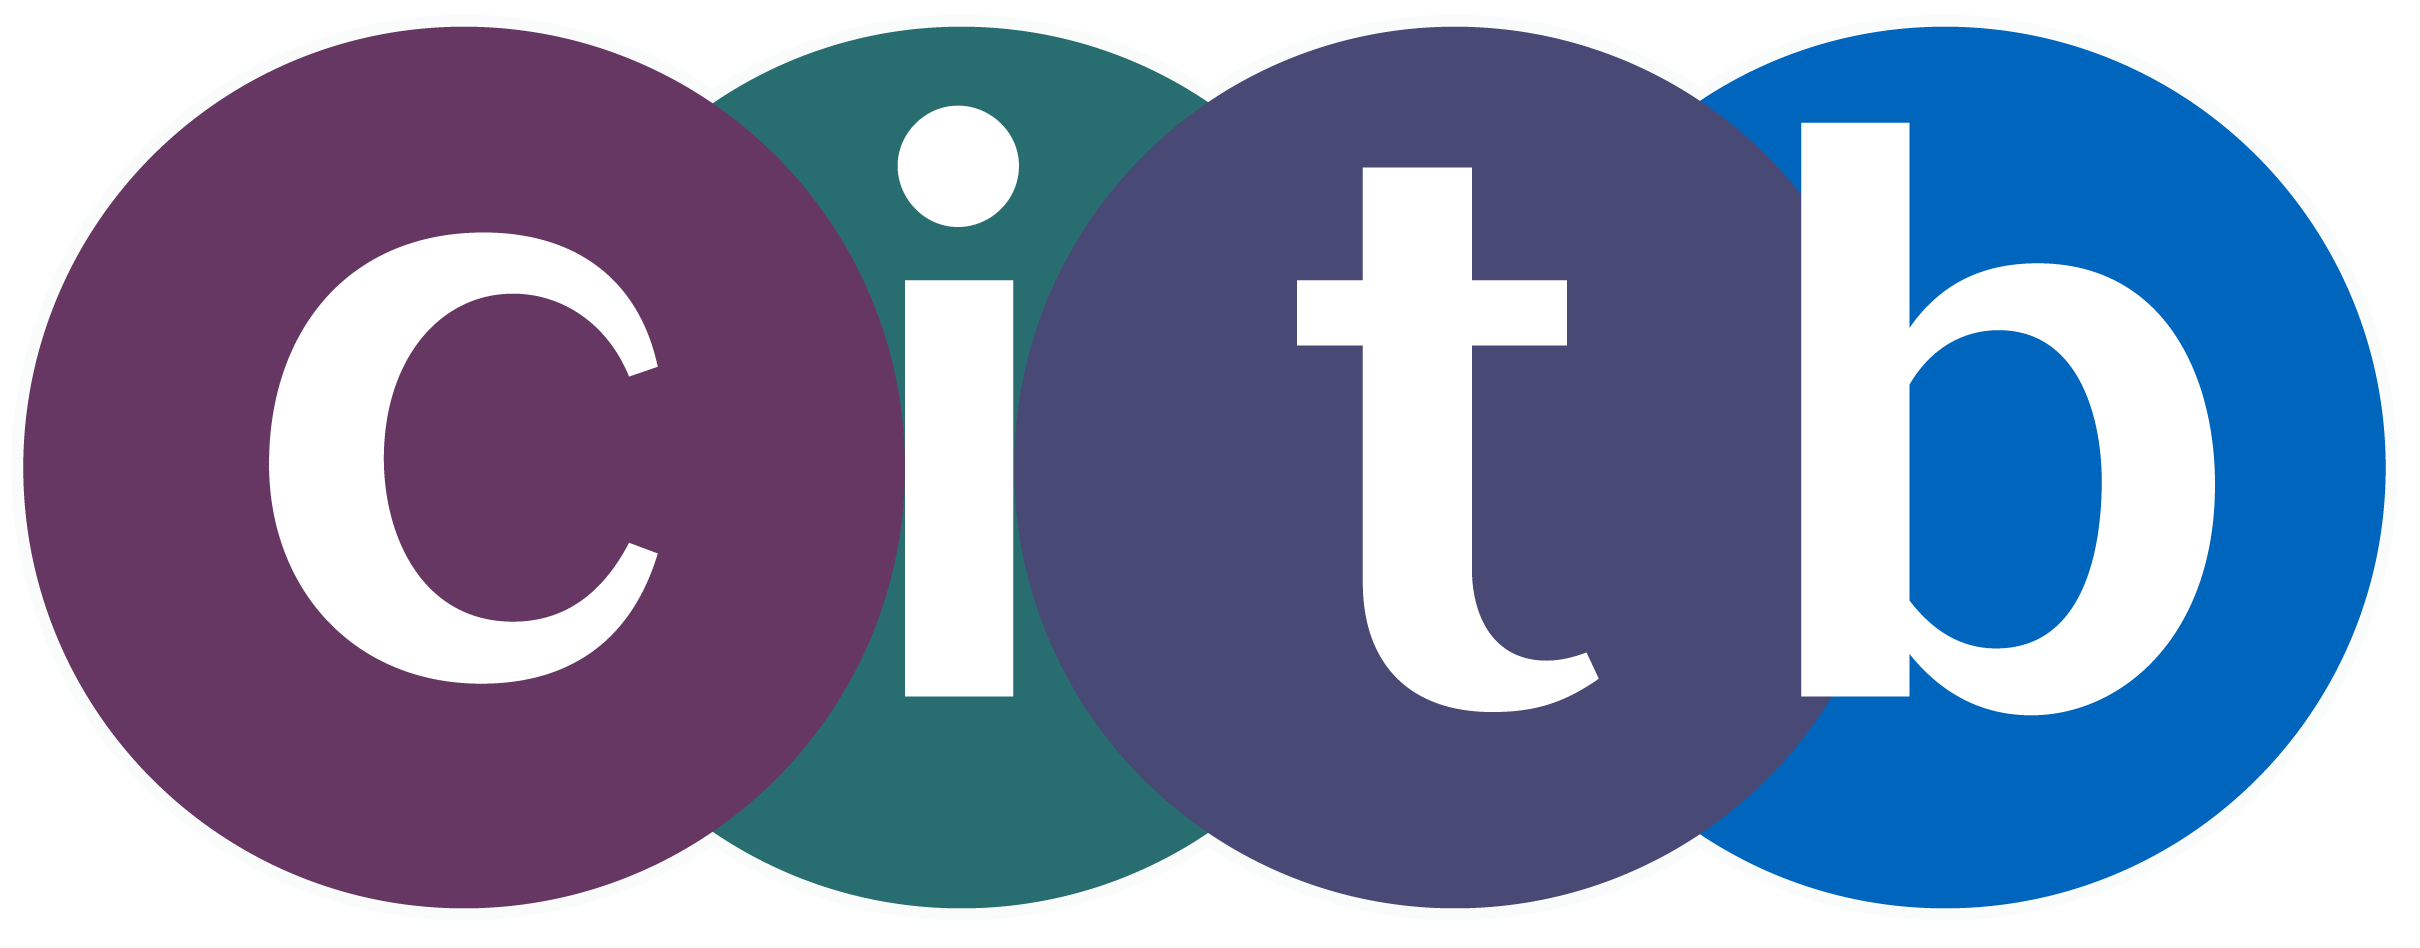 CITB logo 2 with white outline